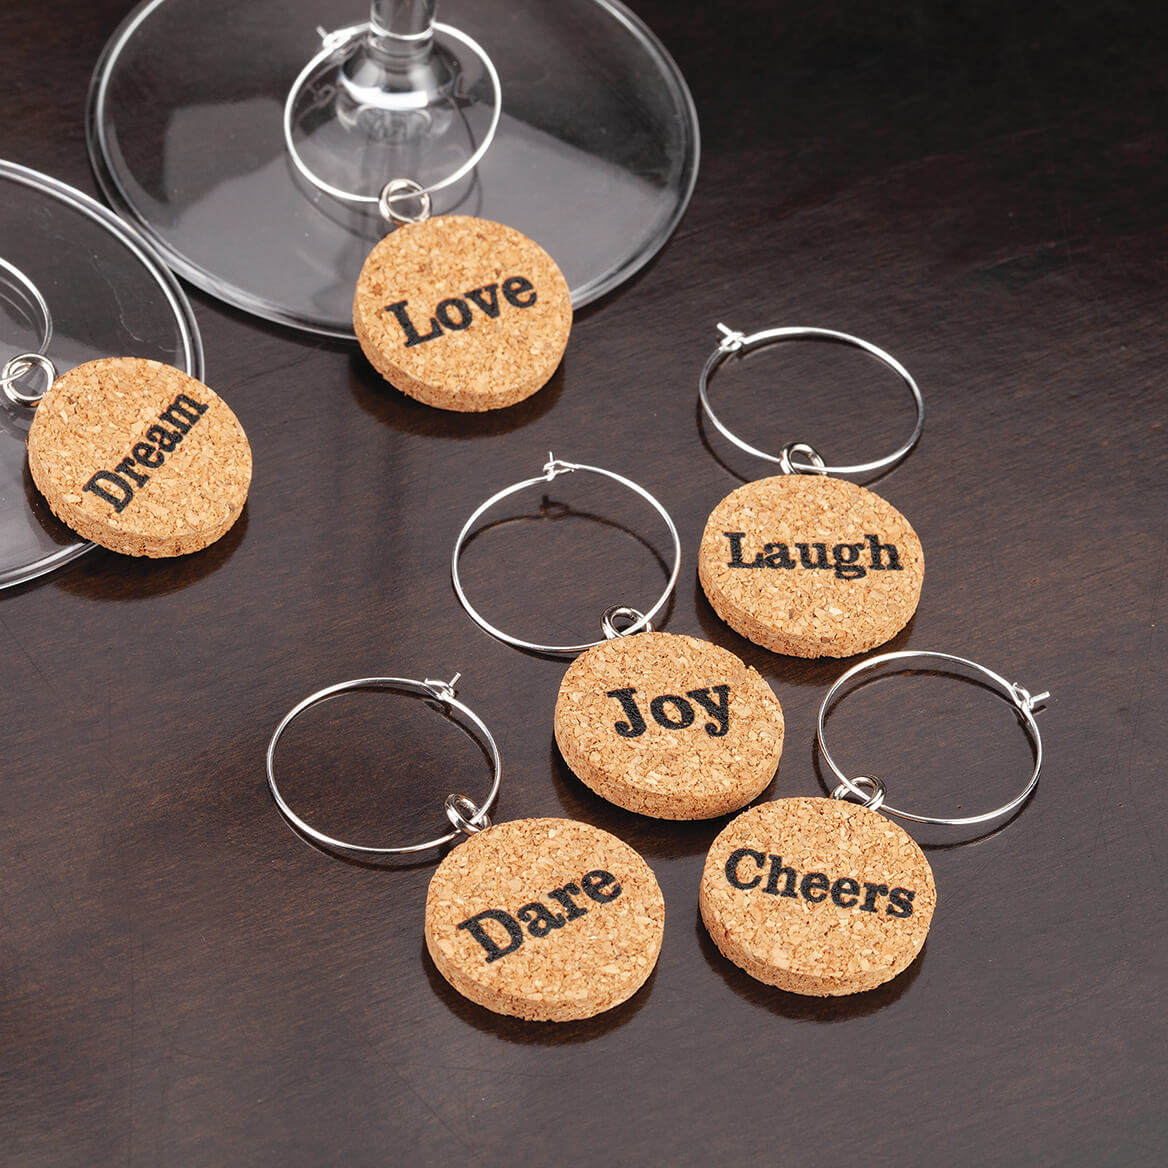 Inspirational Cork Wine Charms Set of 6-370884